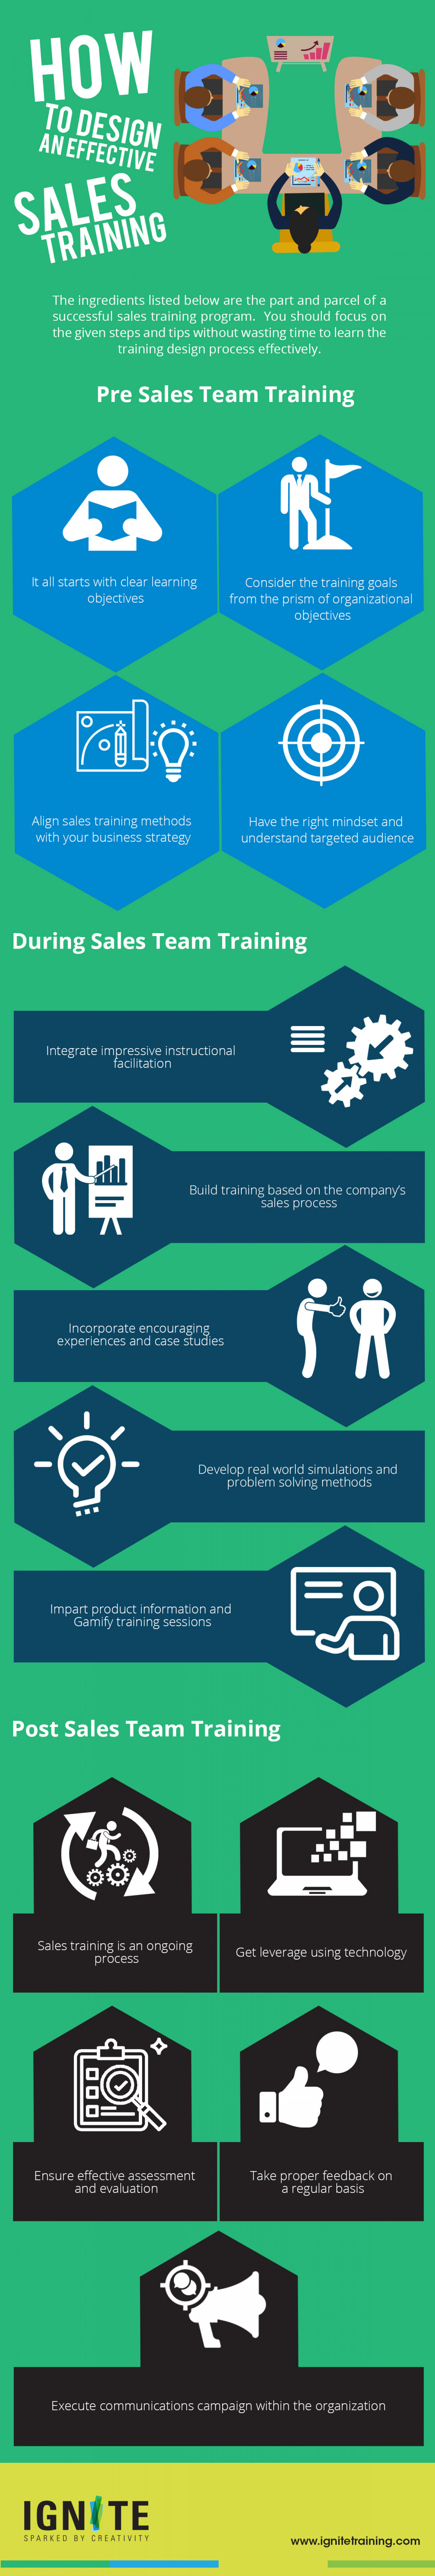 How To Design An Effective Sales Training Infographic